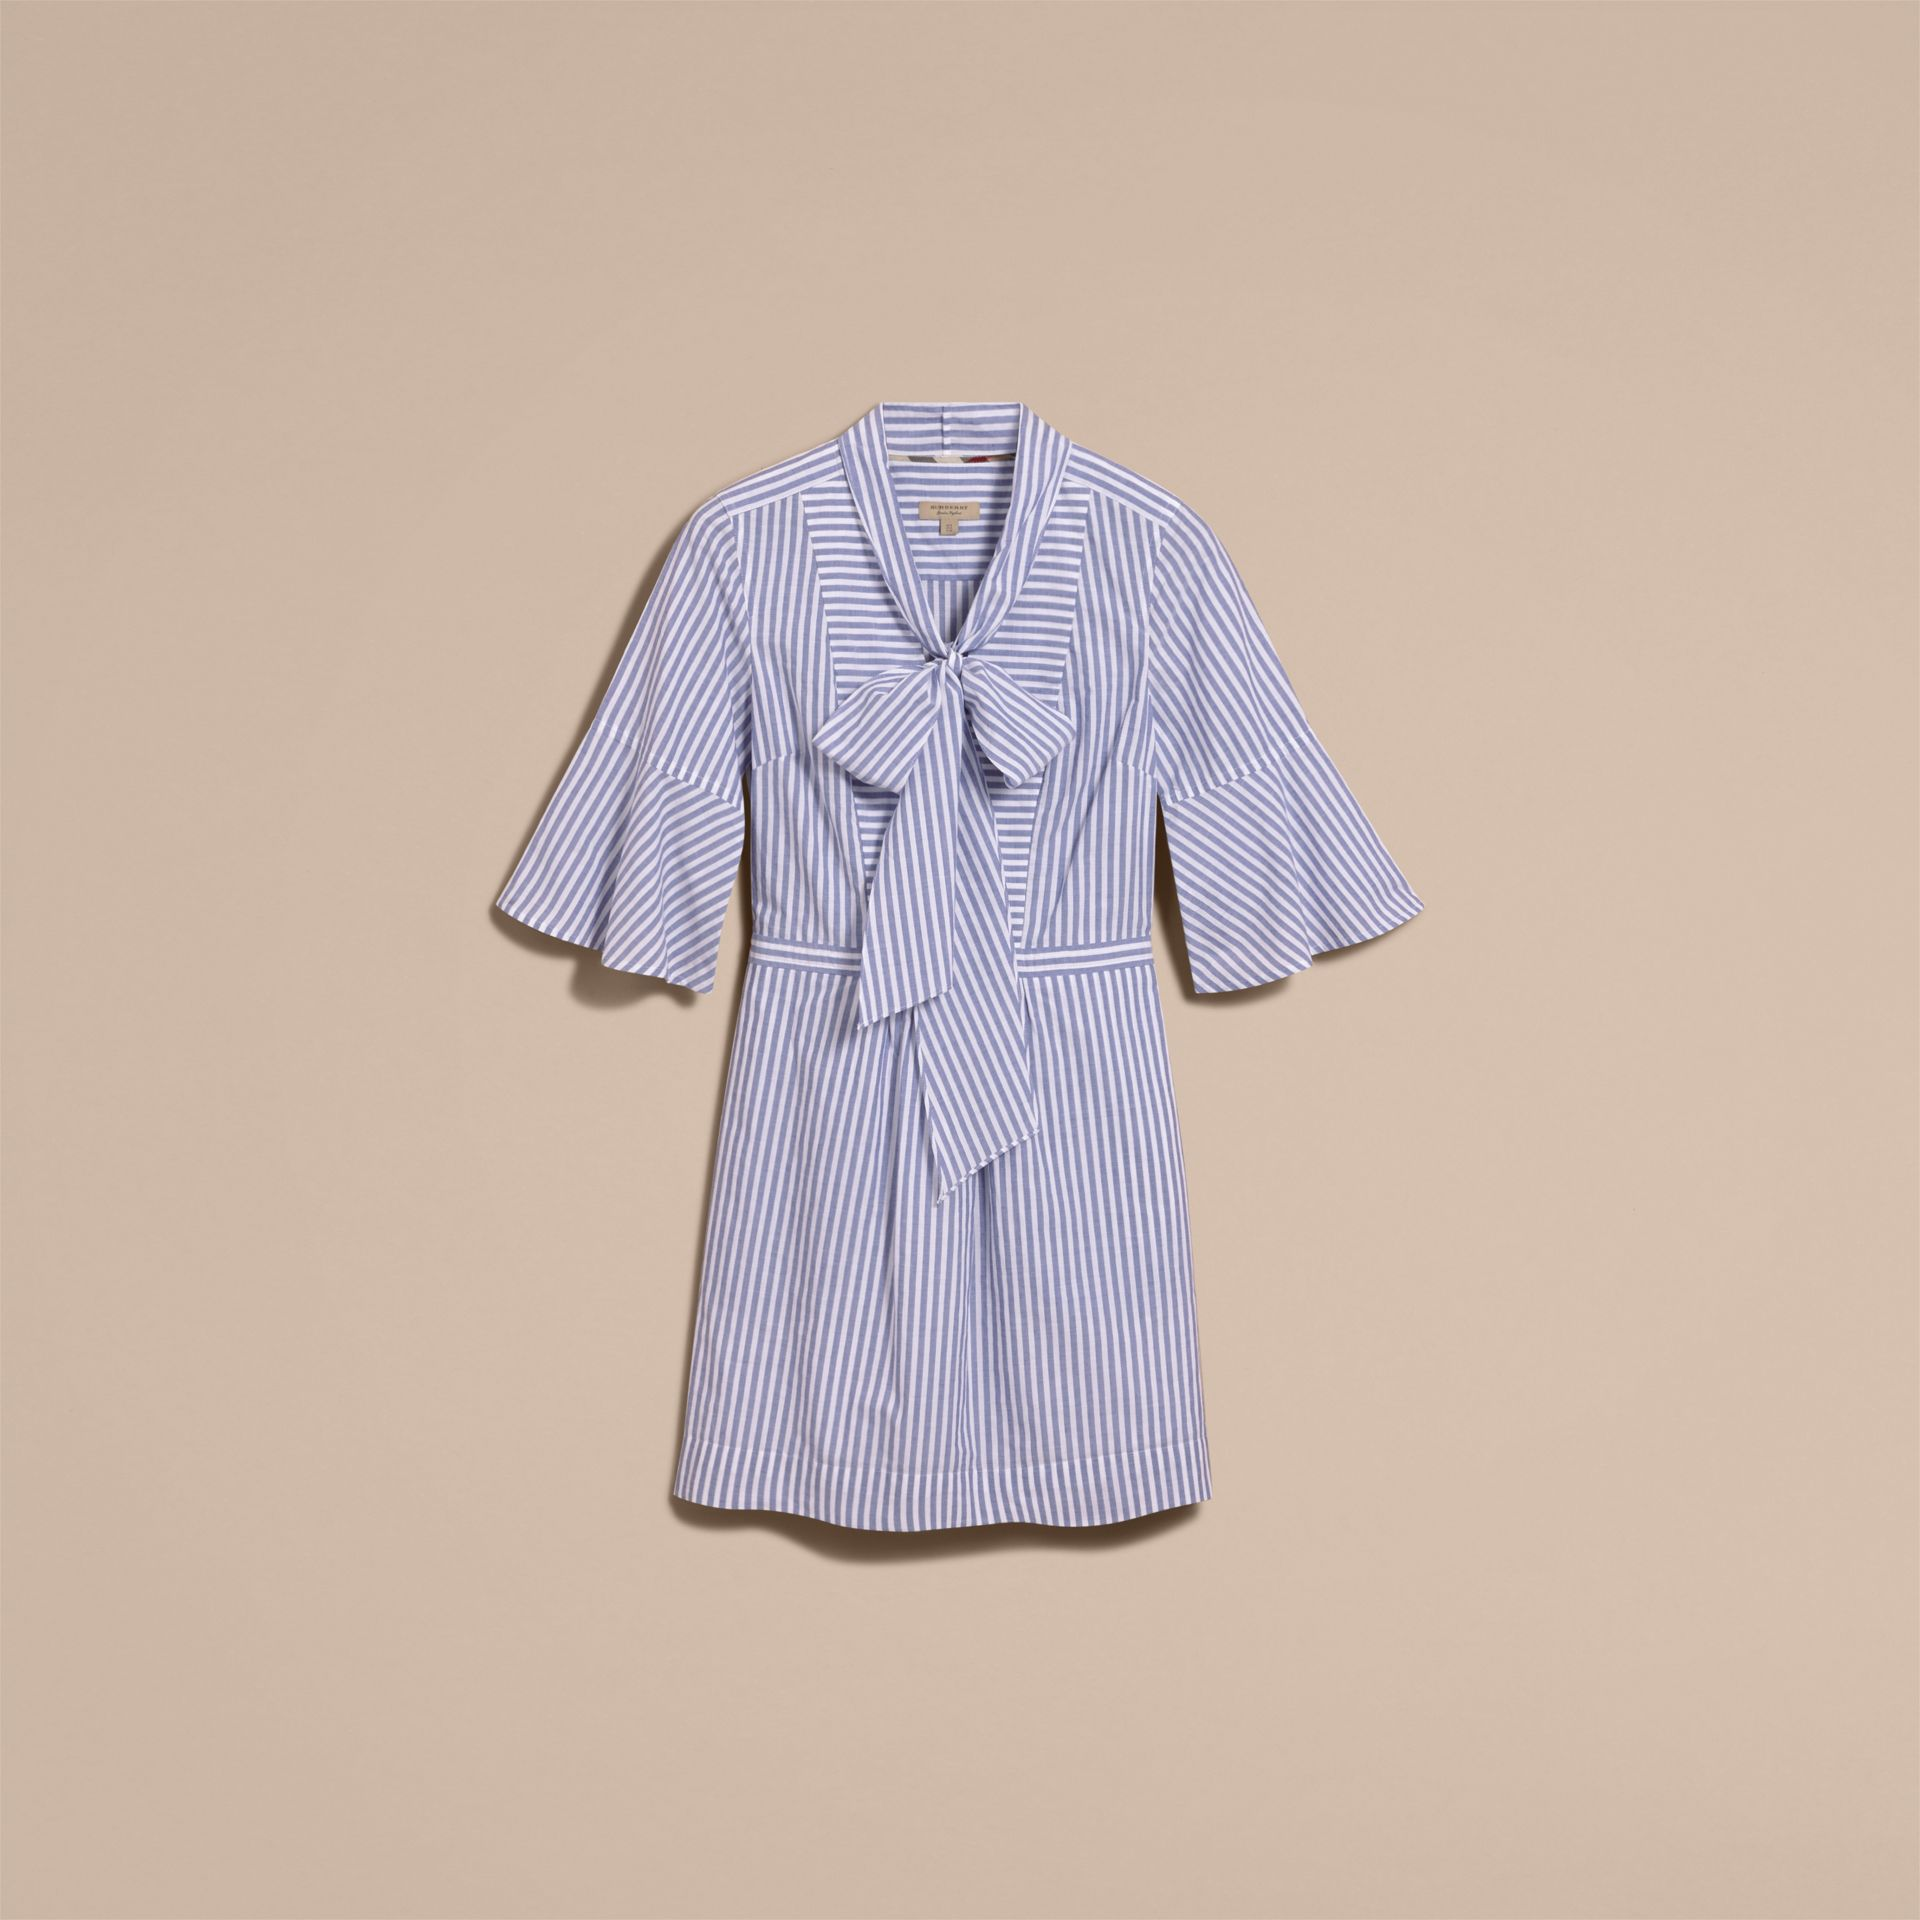 Bell-sleeve Striped Shirt Dress with Tie Neck in Pale Blue/white - Women | Burberry - gallery image 4